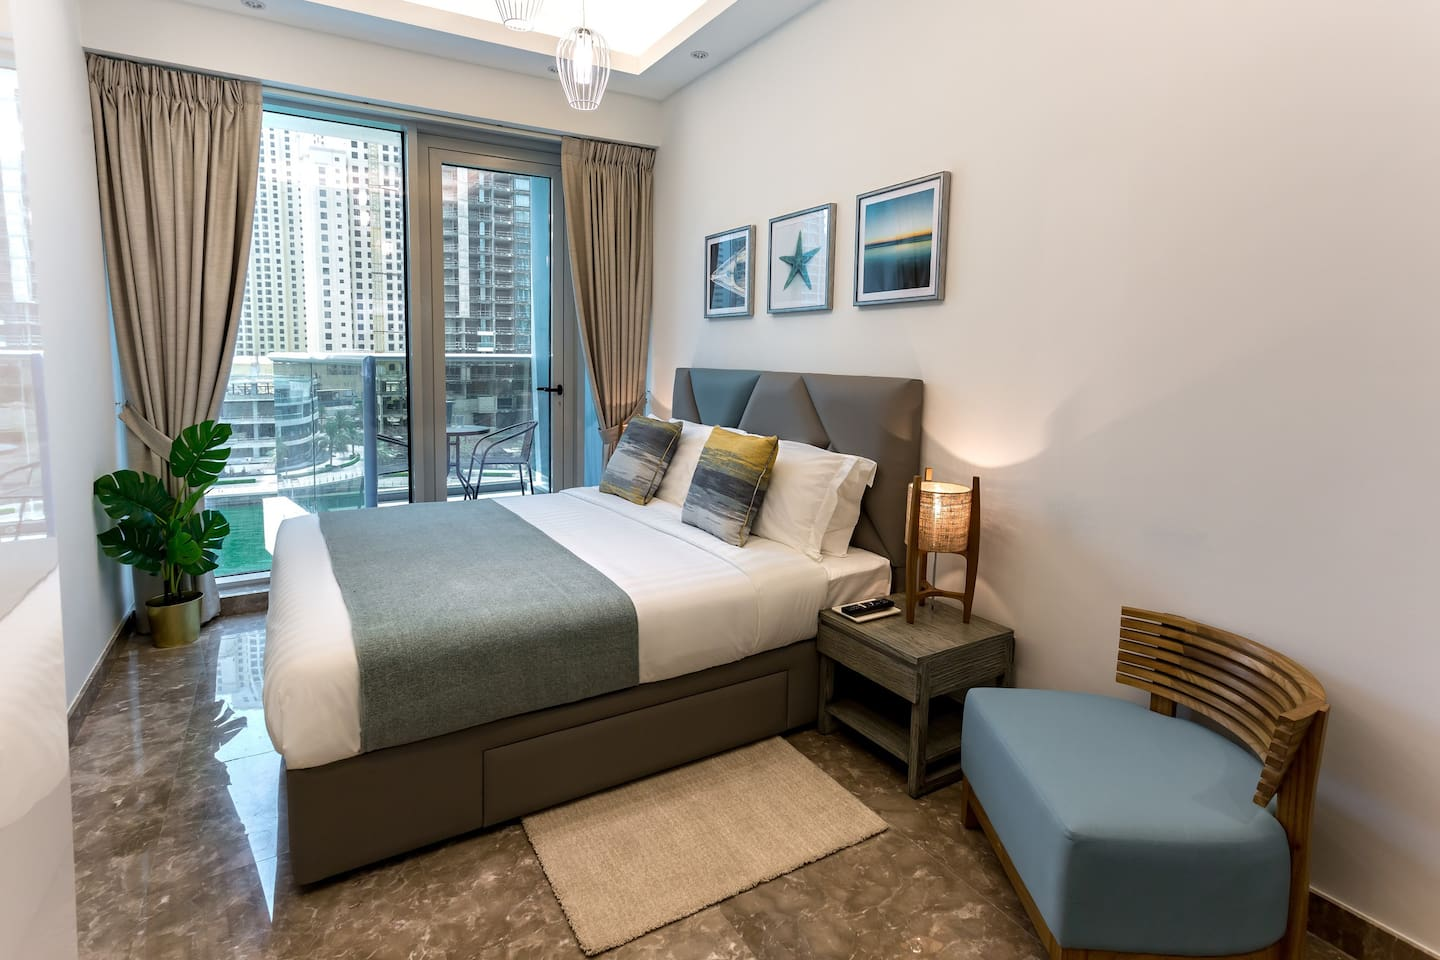 Spacious and Bright Bedroom space with stunning Marina Views!